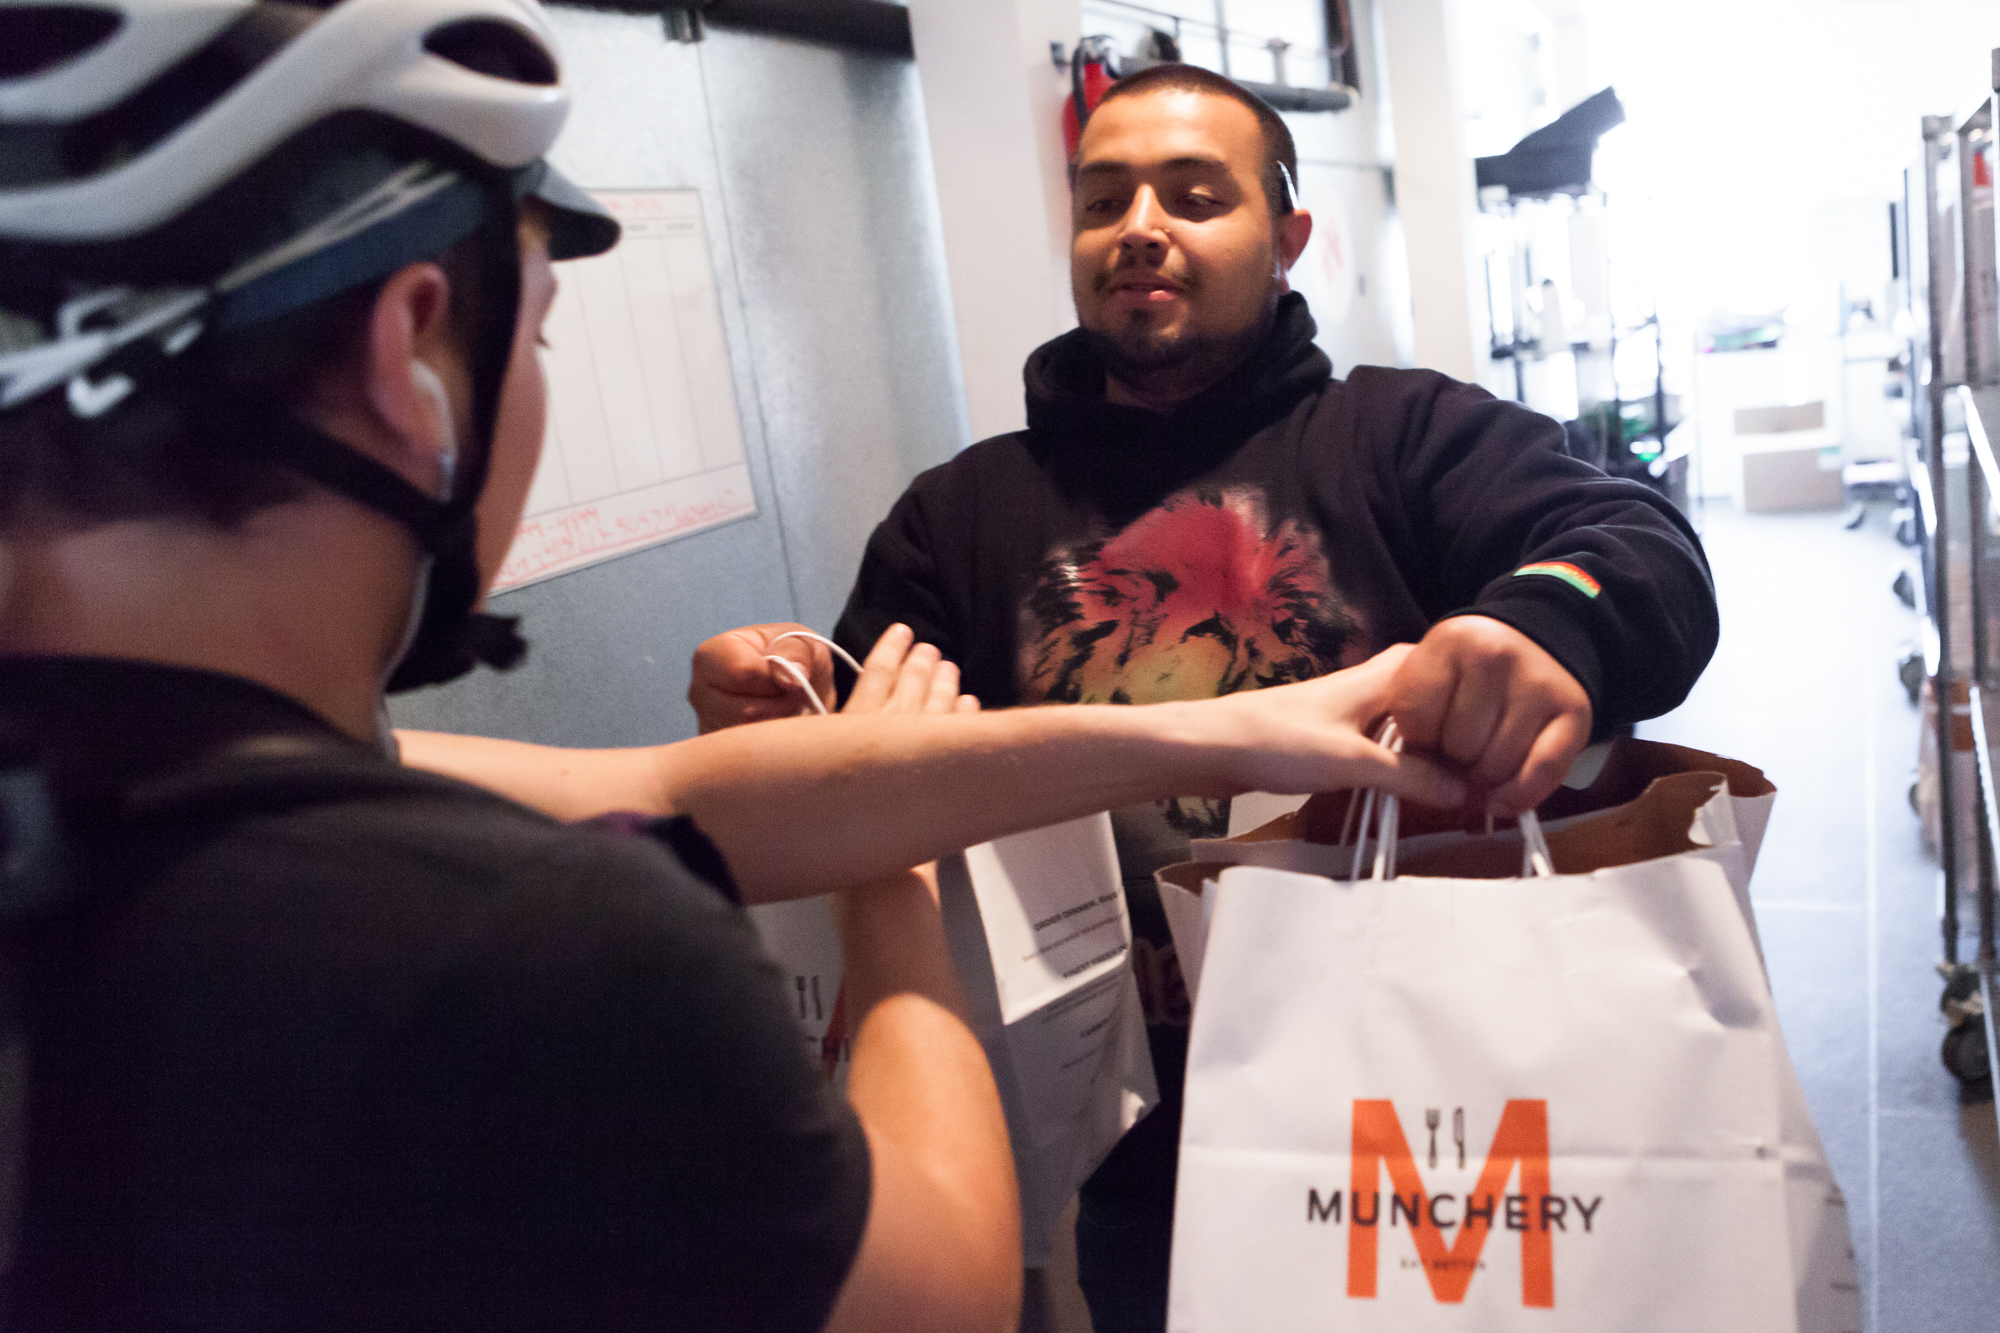 Munchery Is the Latest Meal Delivery Service to Go Bust